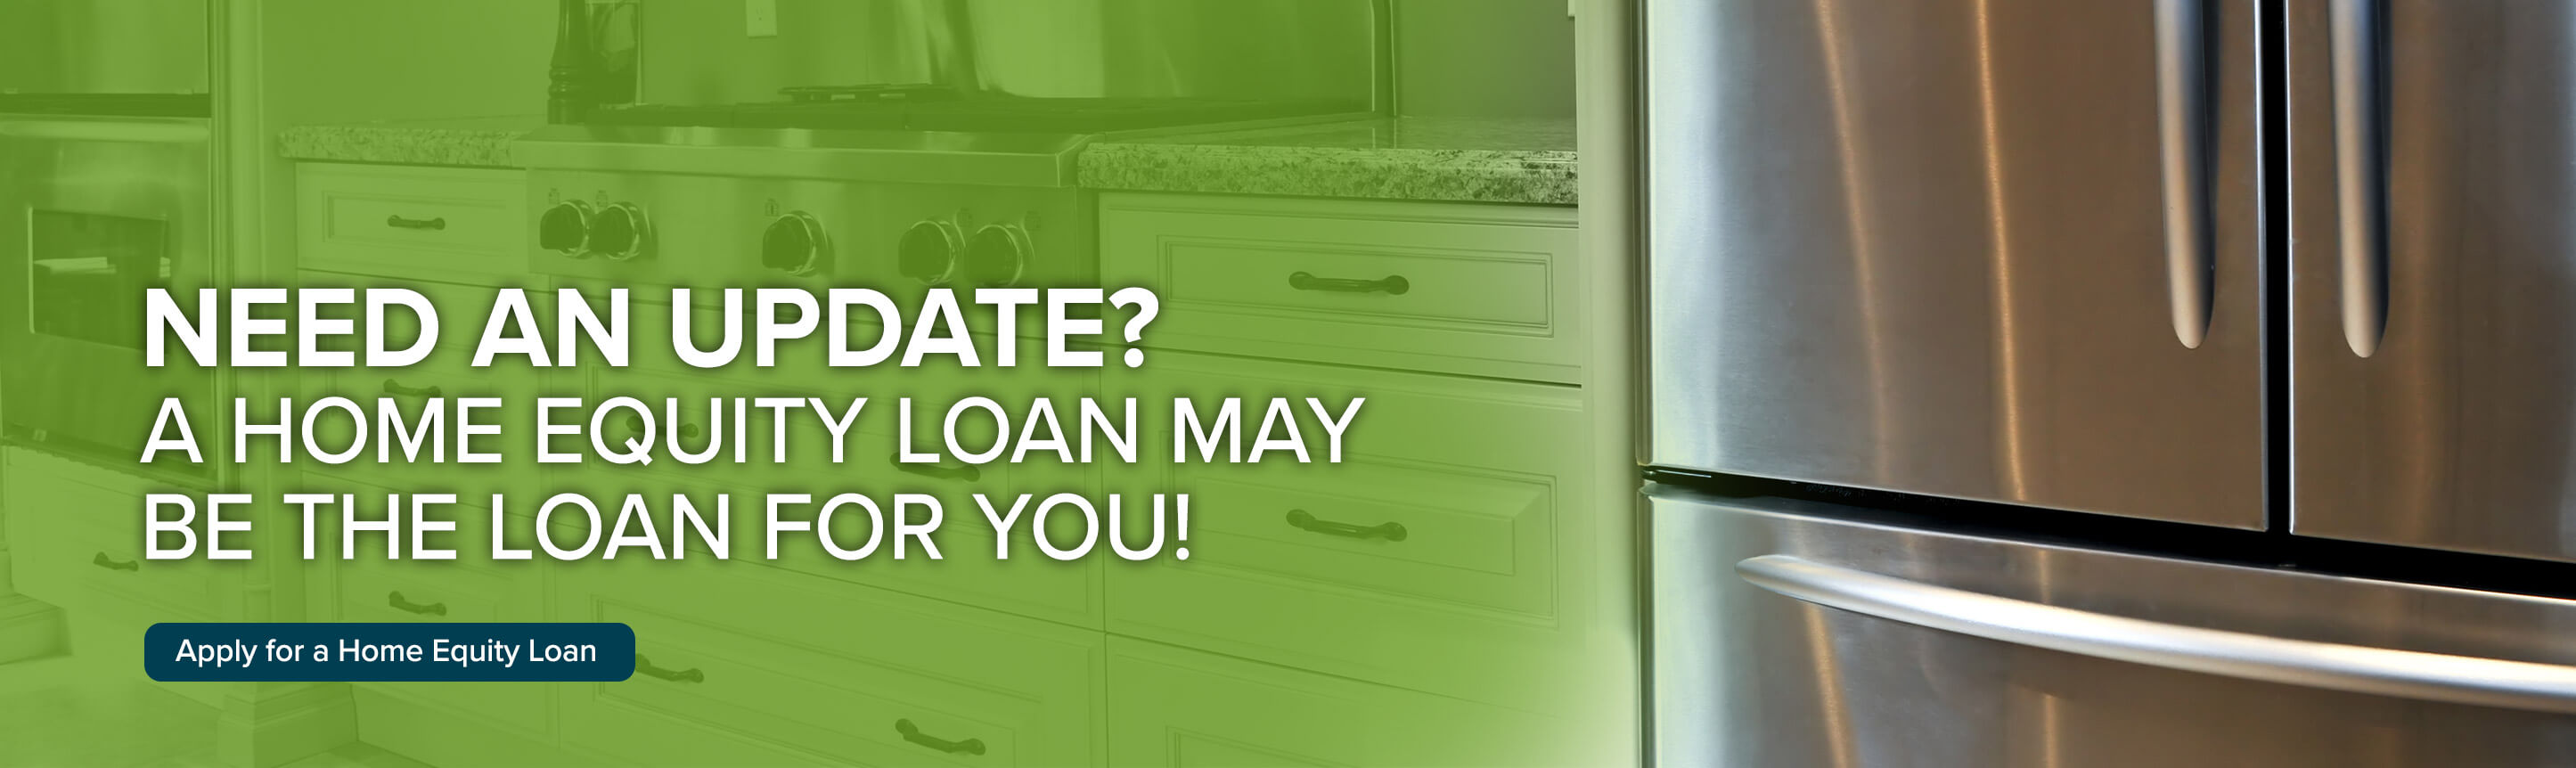 Need an update? A home equity loan may be the loan for you! Apply for home equity loan